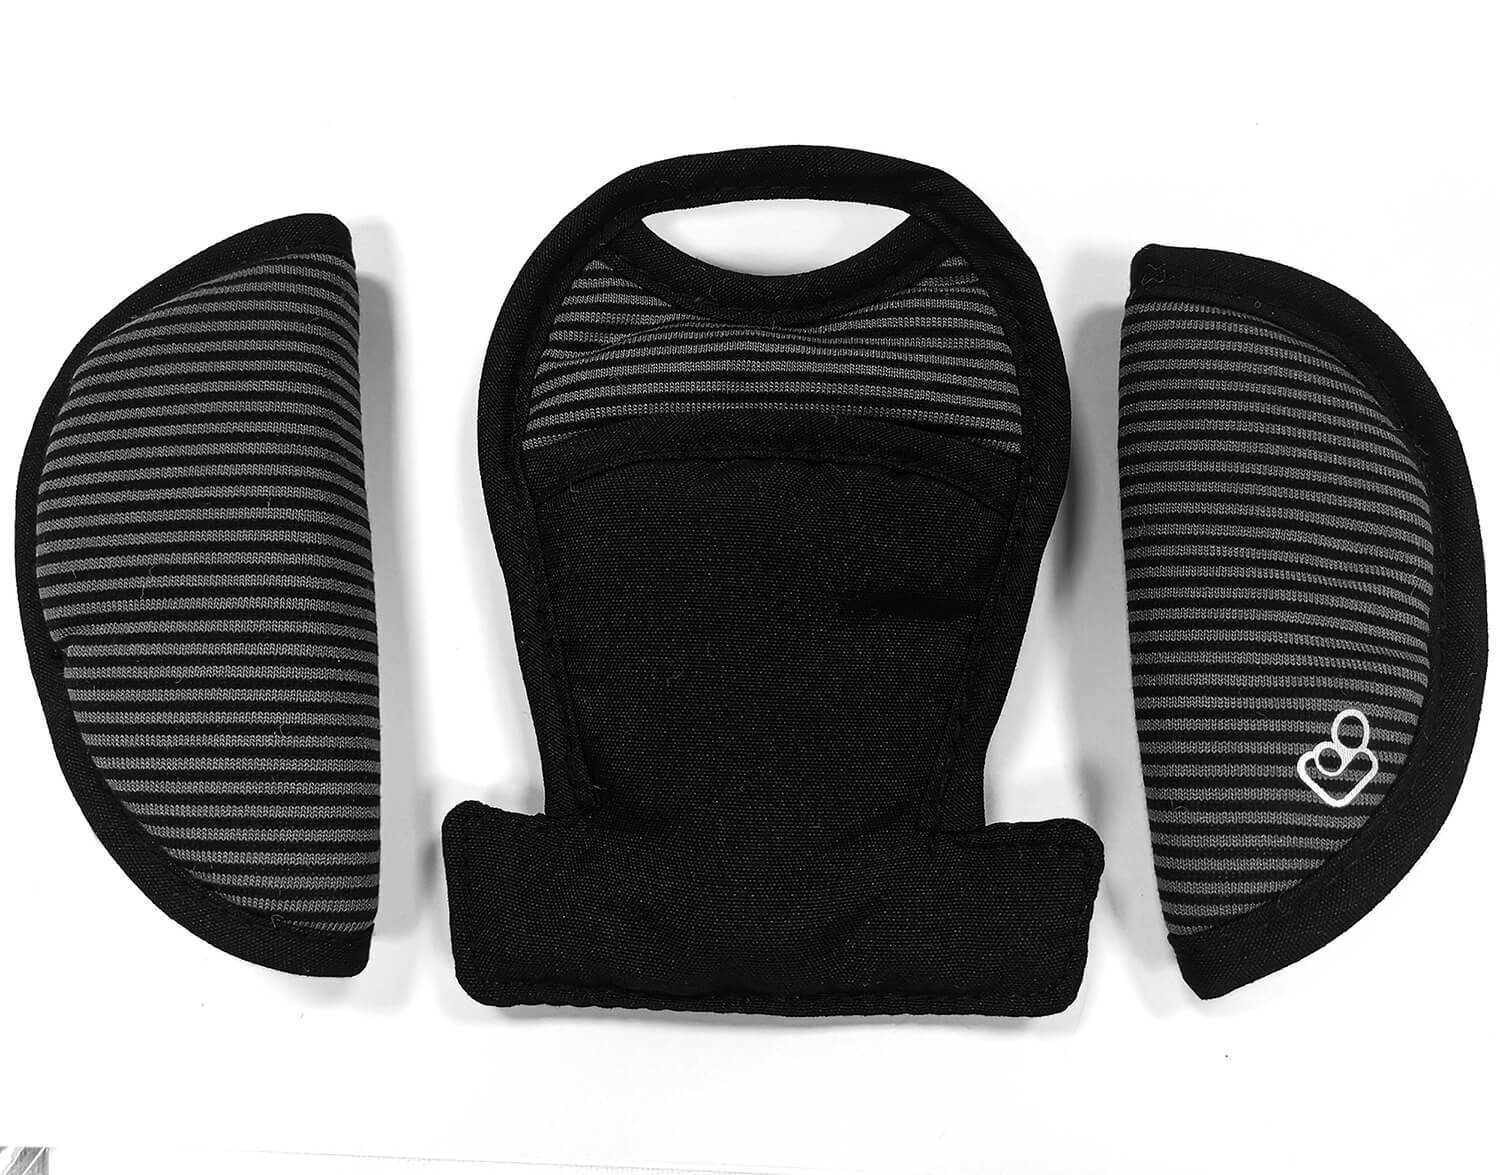 maxi cosi cabriofix belt crotch pad. Black Bedroom Furniture Sets. Home Design Ideas